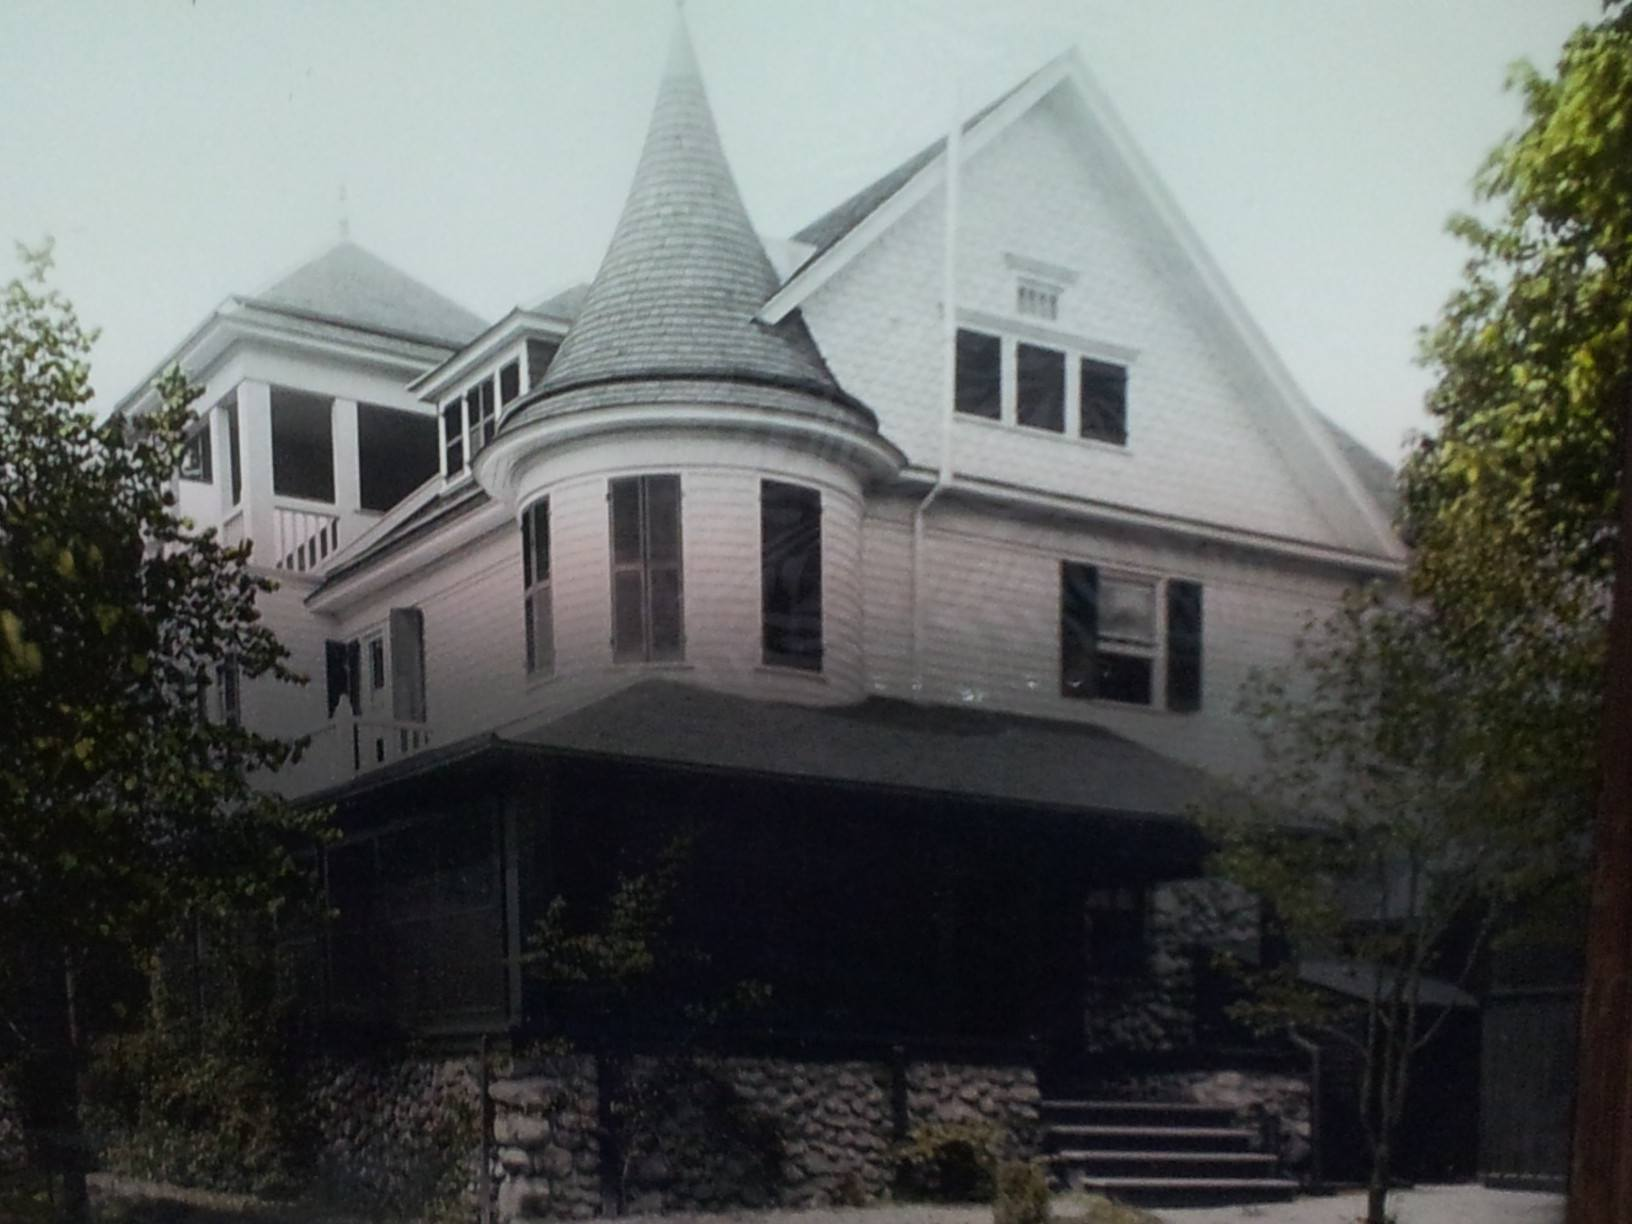 A distorted image of a large house, partially in colour, partially in black and white.